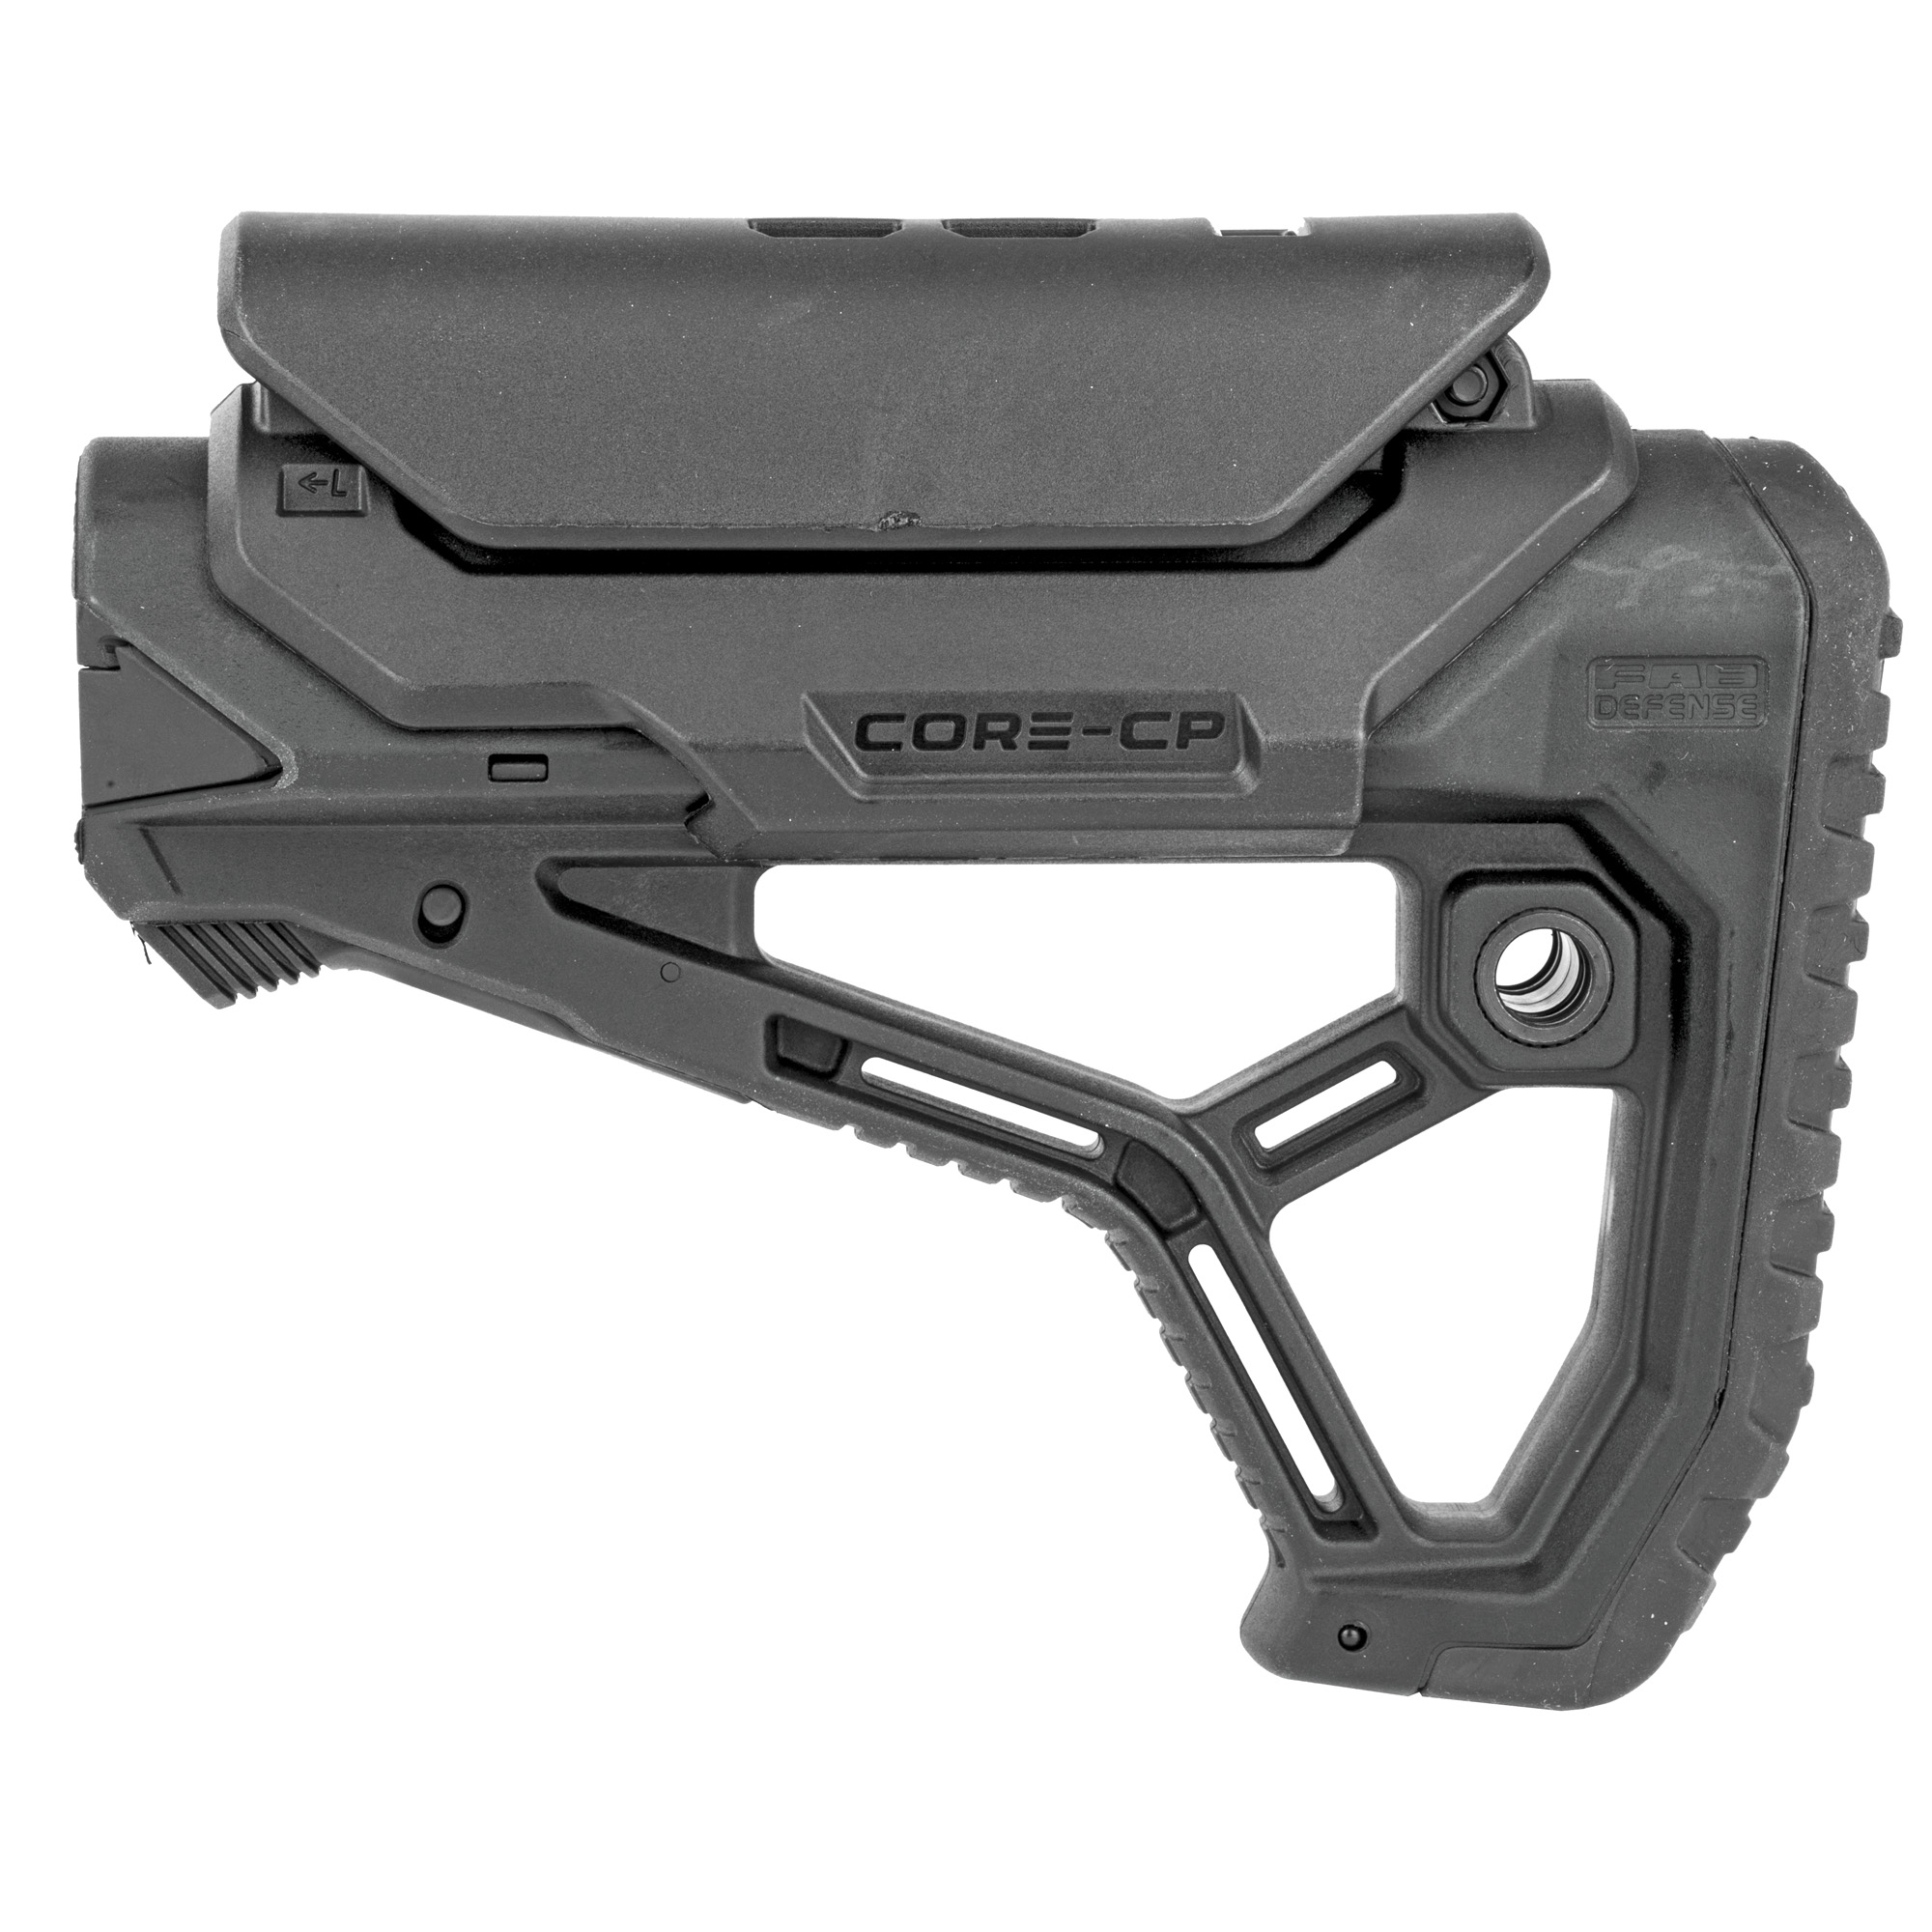 "The GL-Core is their newest addition to their line of buttstocks. The integrated cheek weld"" ergonomic buttpad and an interchanging tube adapter"" provide an unmatched fit on Mil-Spec and Commercial buffer tubes"" with a high level of efficiency and comfort. The CP version includes an additional Cheek Rest"" designed to support the use of different optics and holographic sights on the AK and VZ platforms."